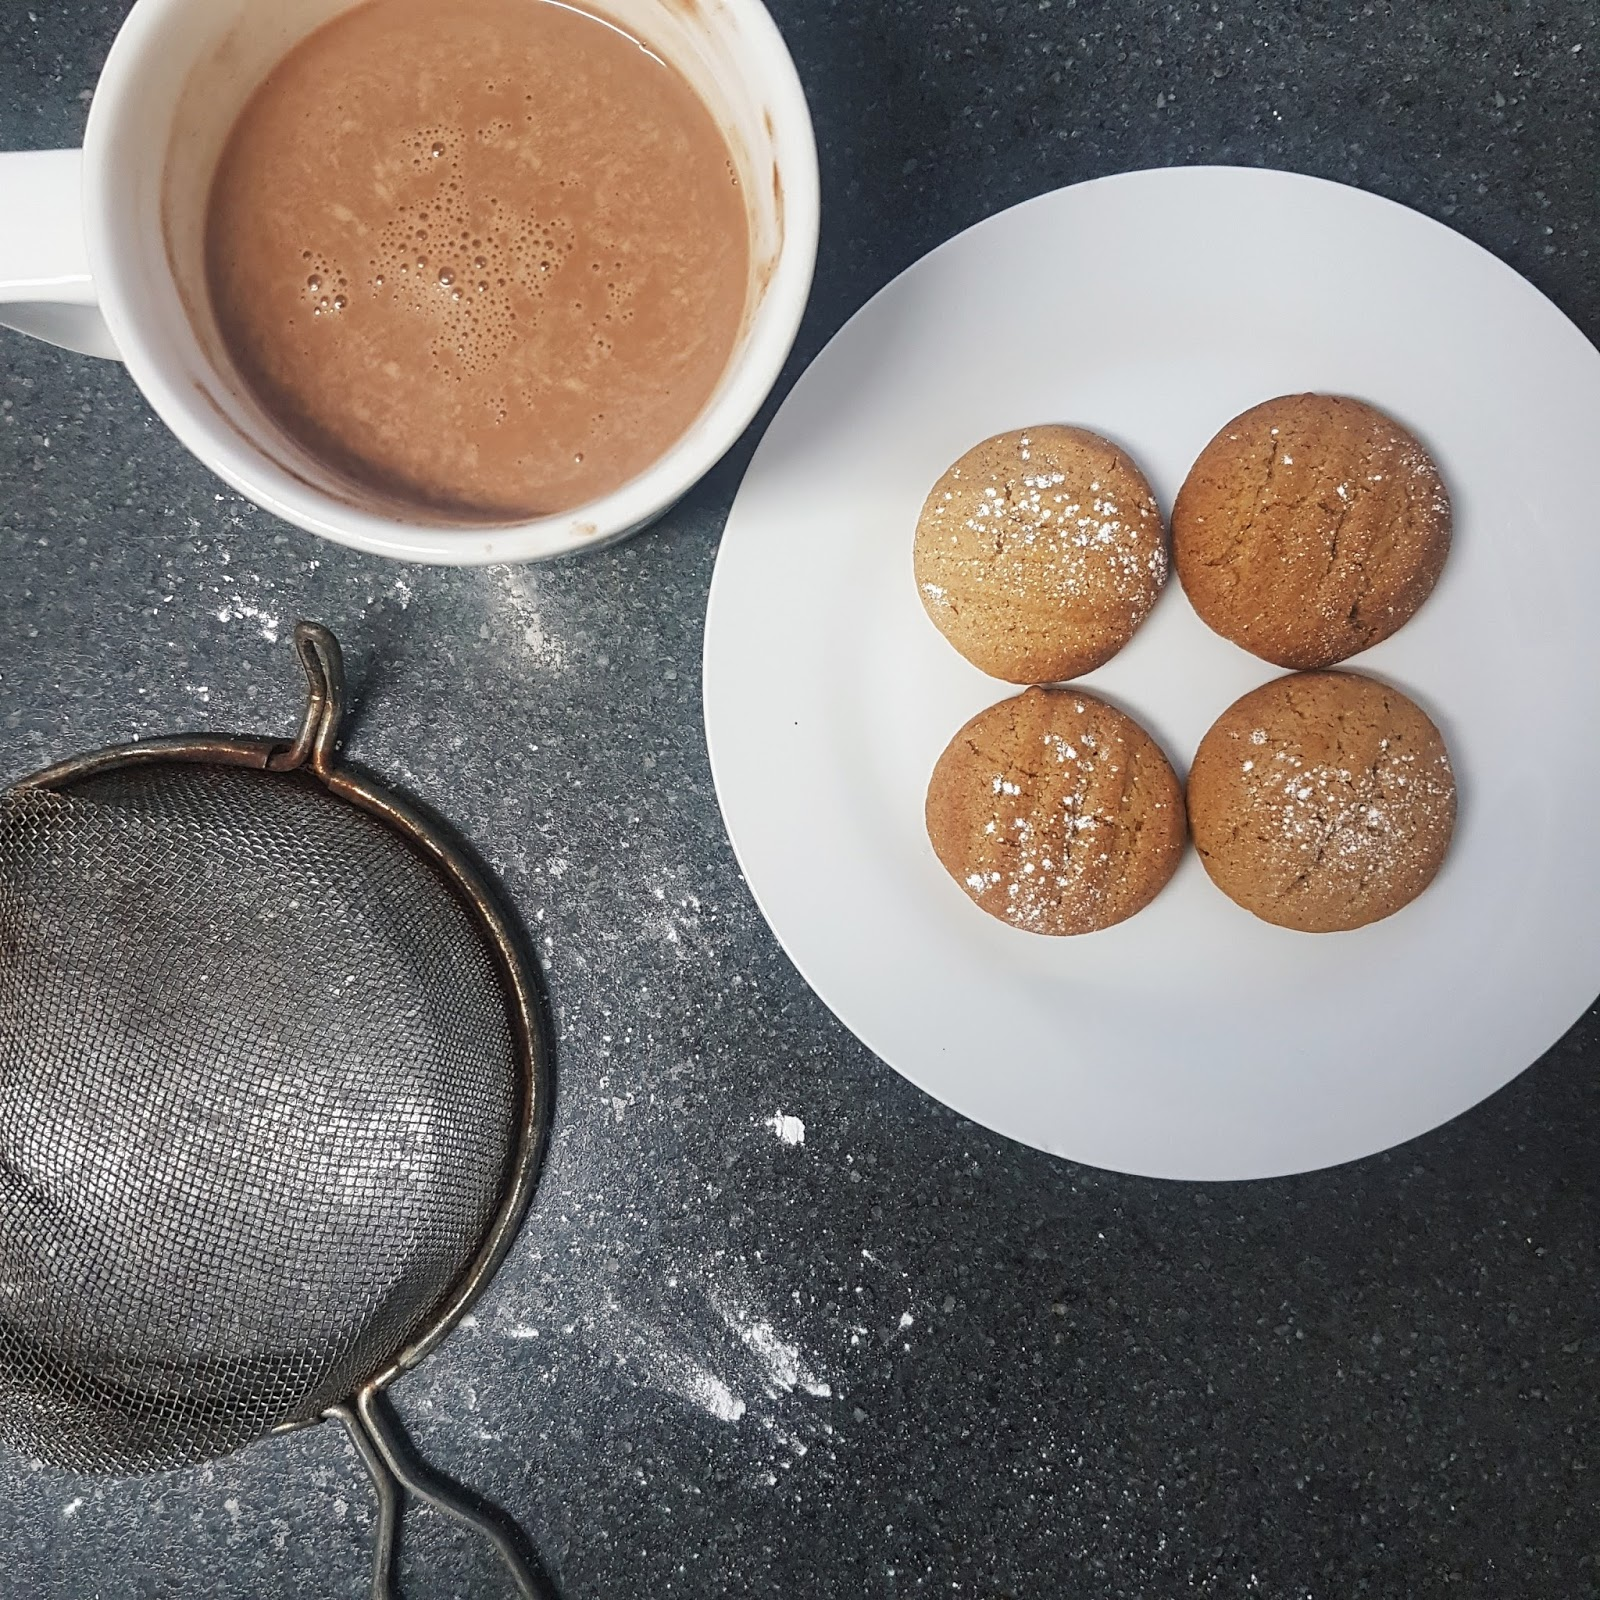 Hot Chocolate and Orange Cinnamon Cookies